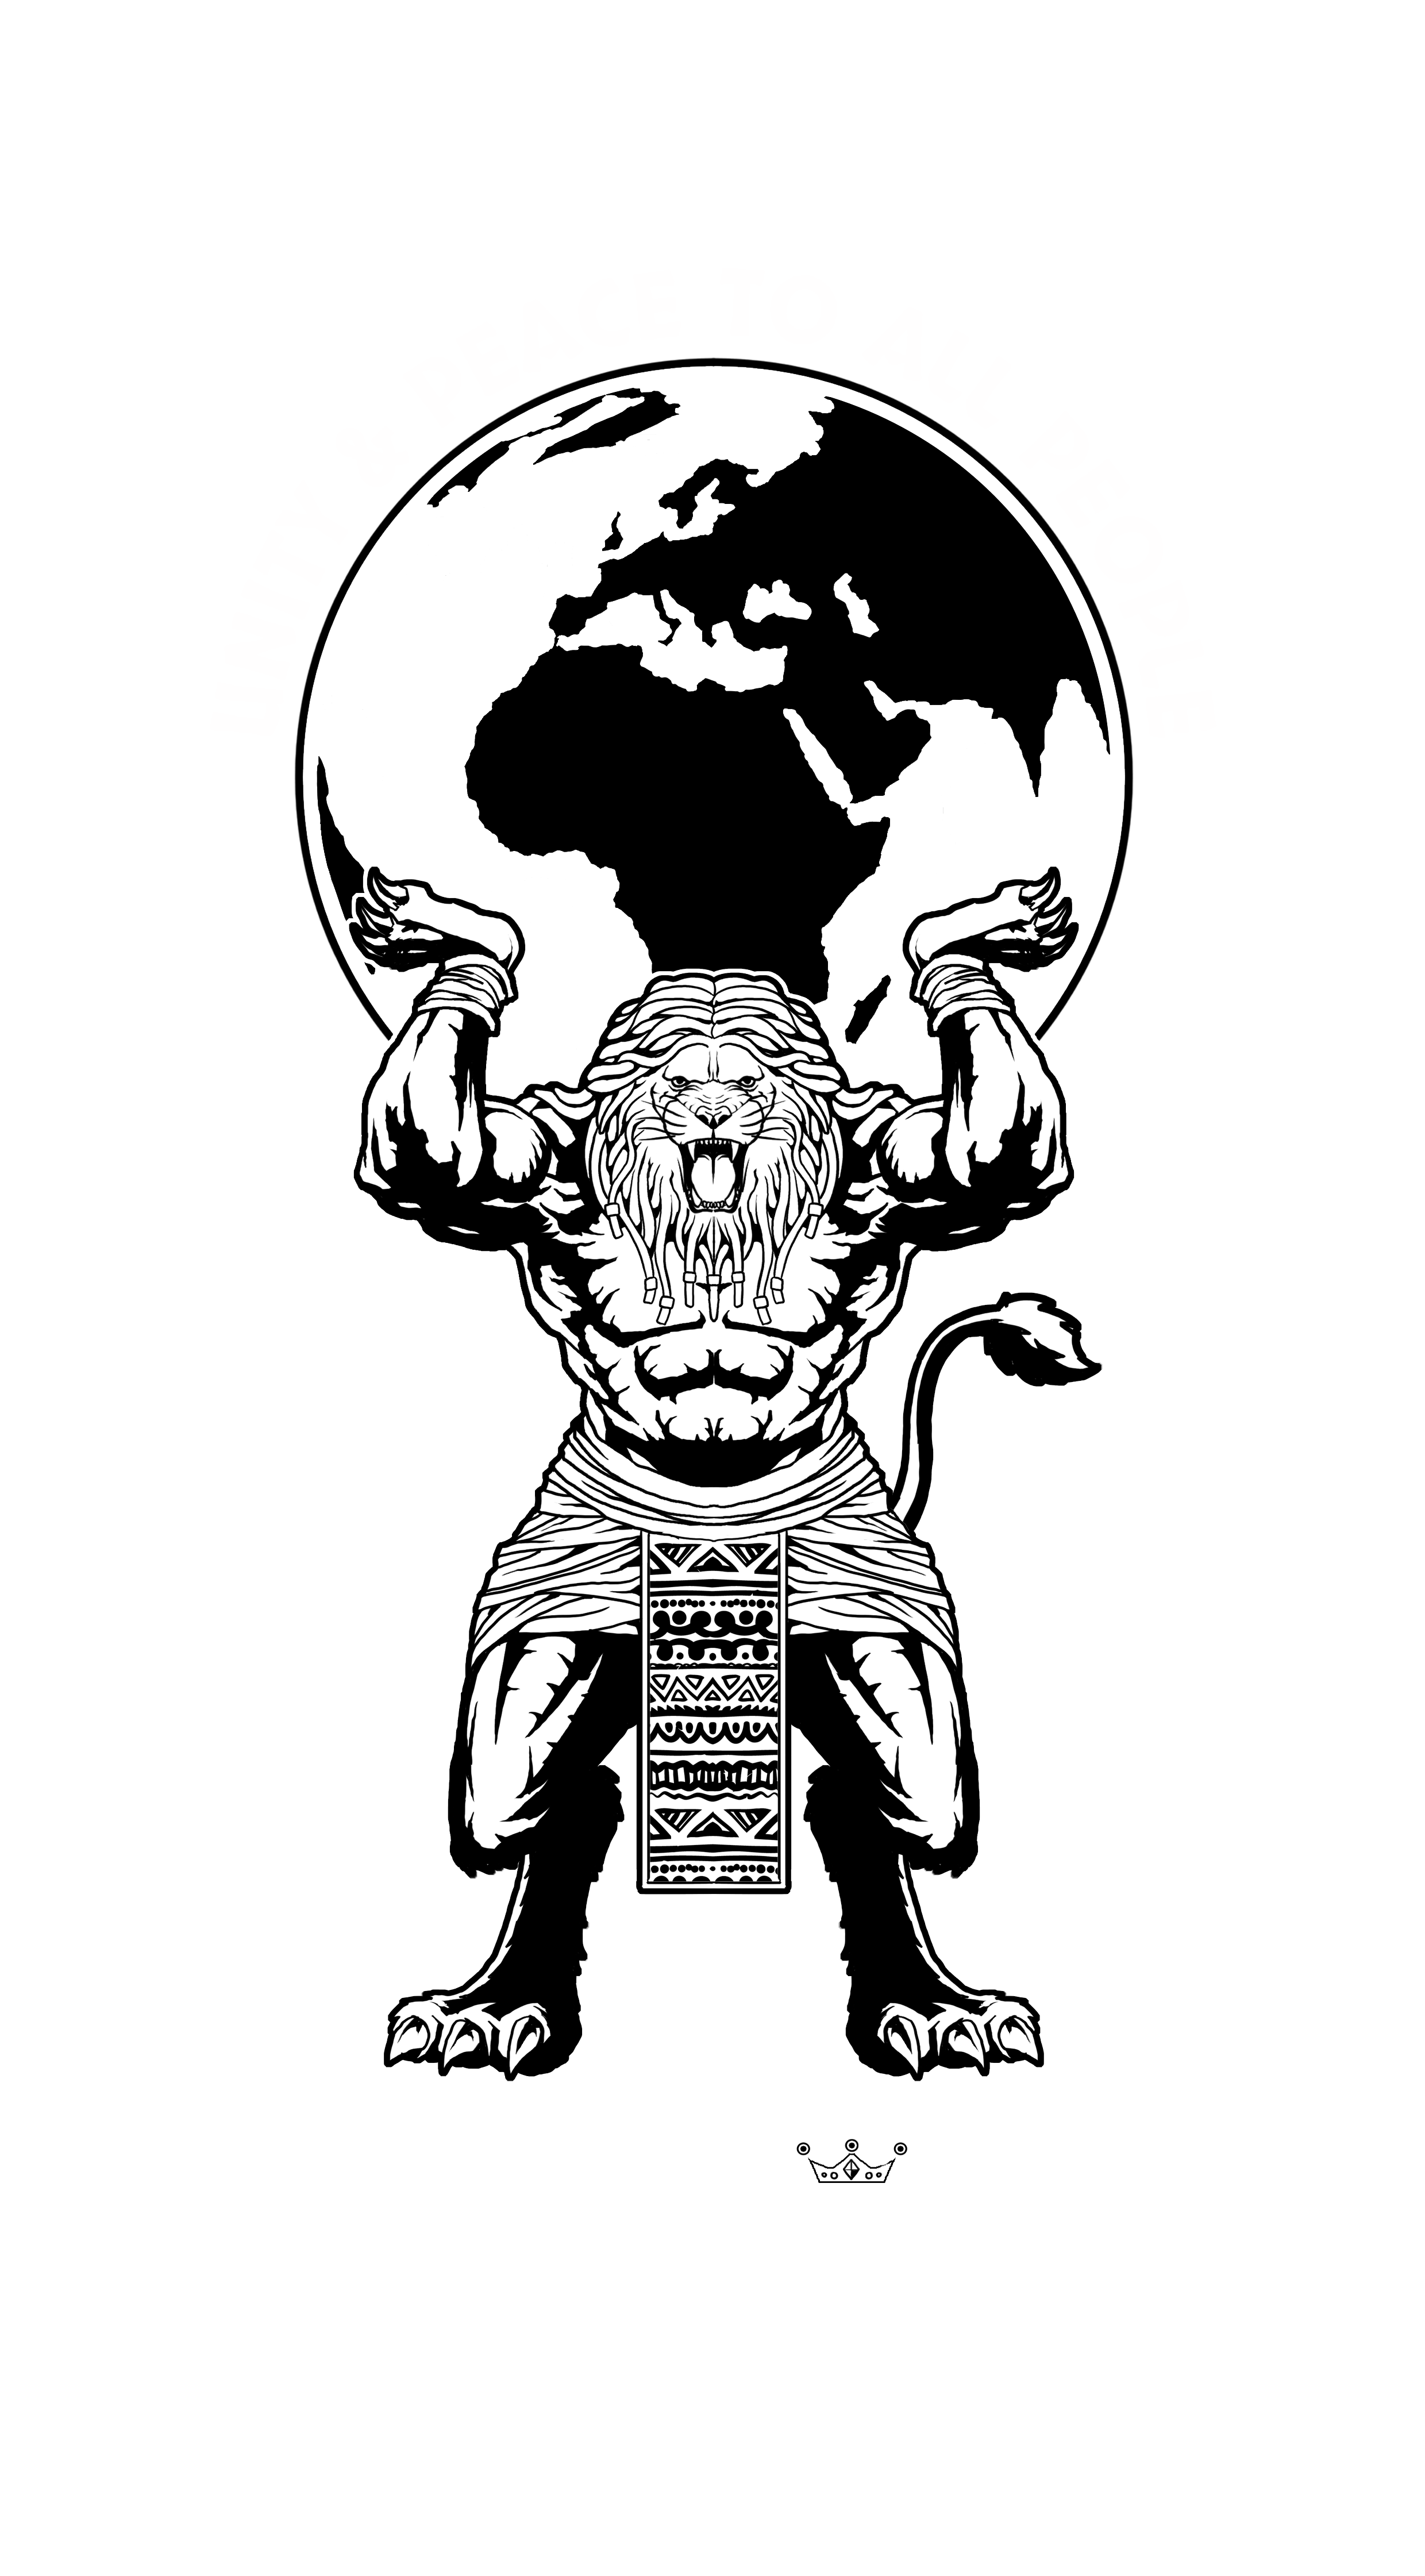 Create a powerful logo depicting a lion with a dreadlock main holding the Earth on his shoulders for Children of Zion!